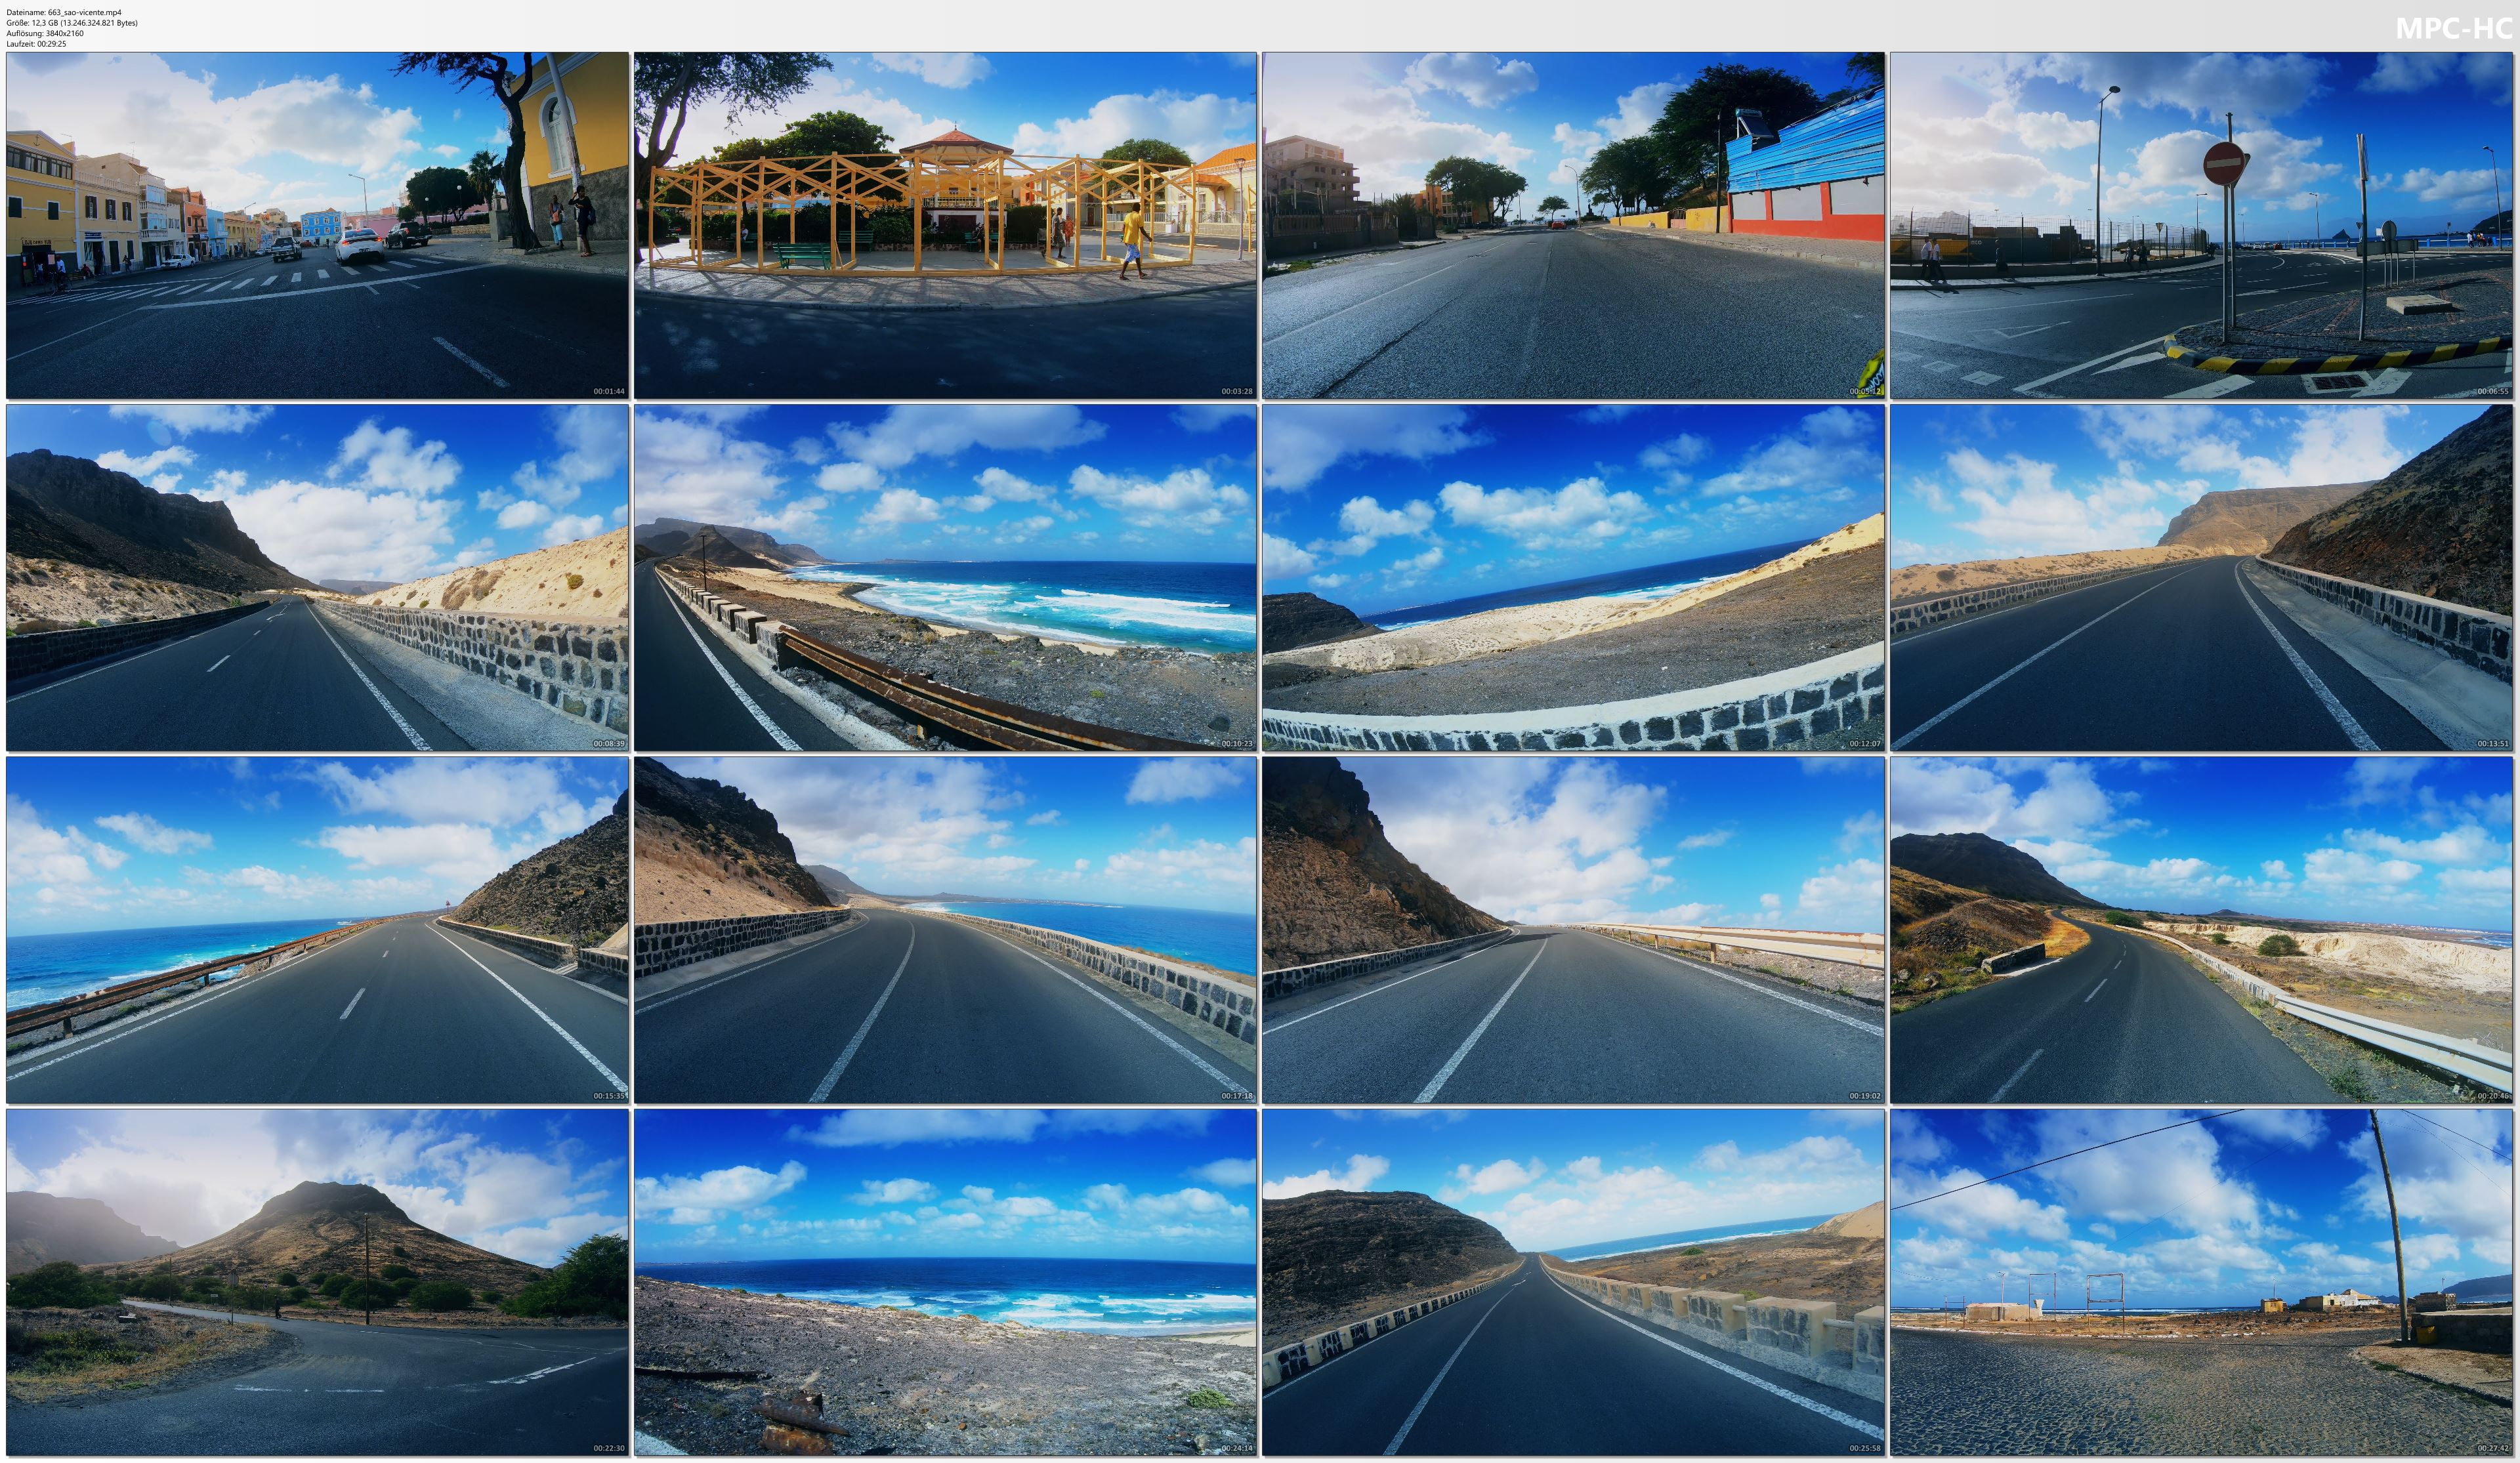 Pictures from Video 【4K】30 MINUTES | Driving São Vicente (Cape Verde) on a Motorbike | 2020 | Mindelo | UltraHD Video